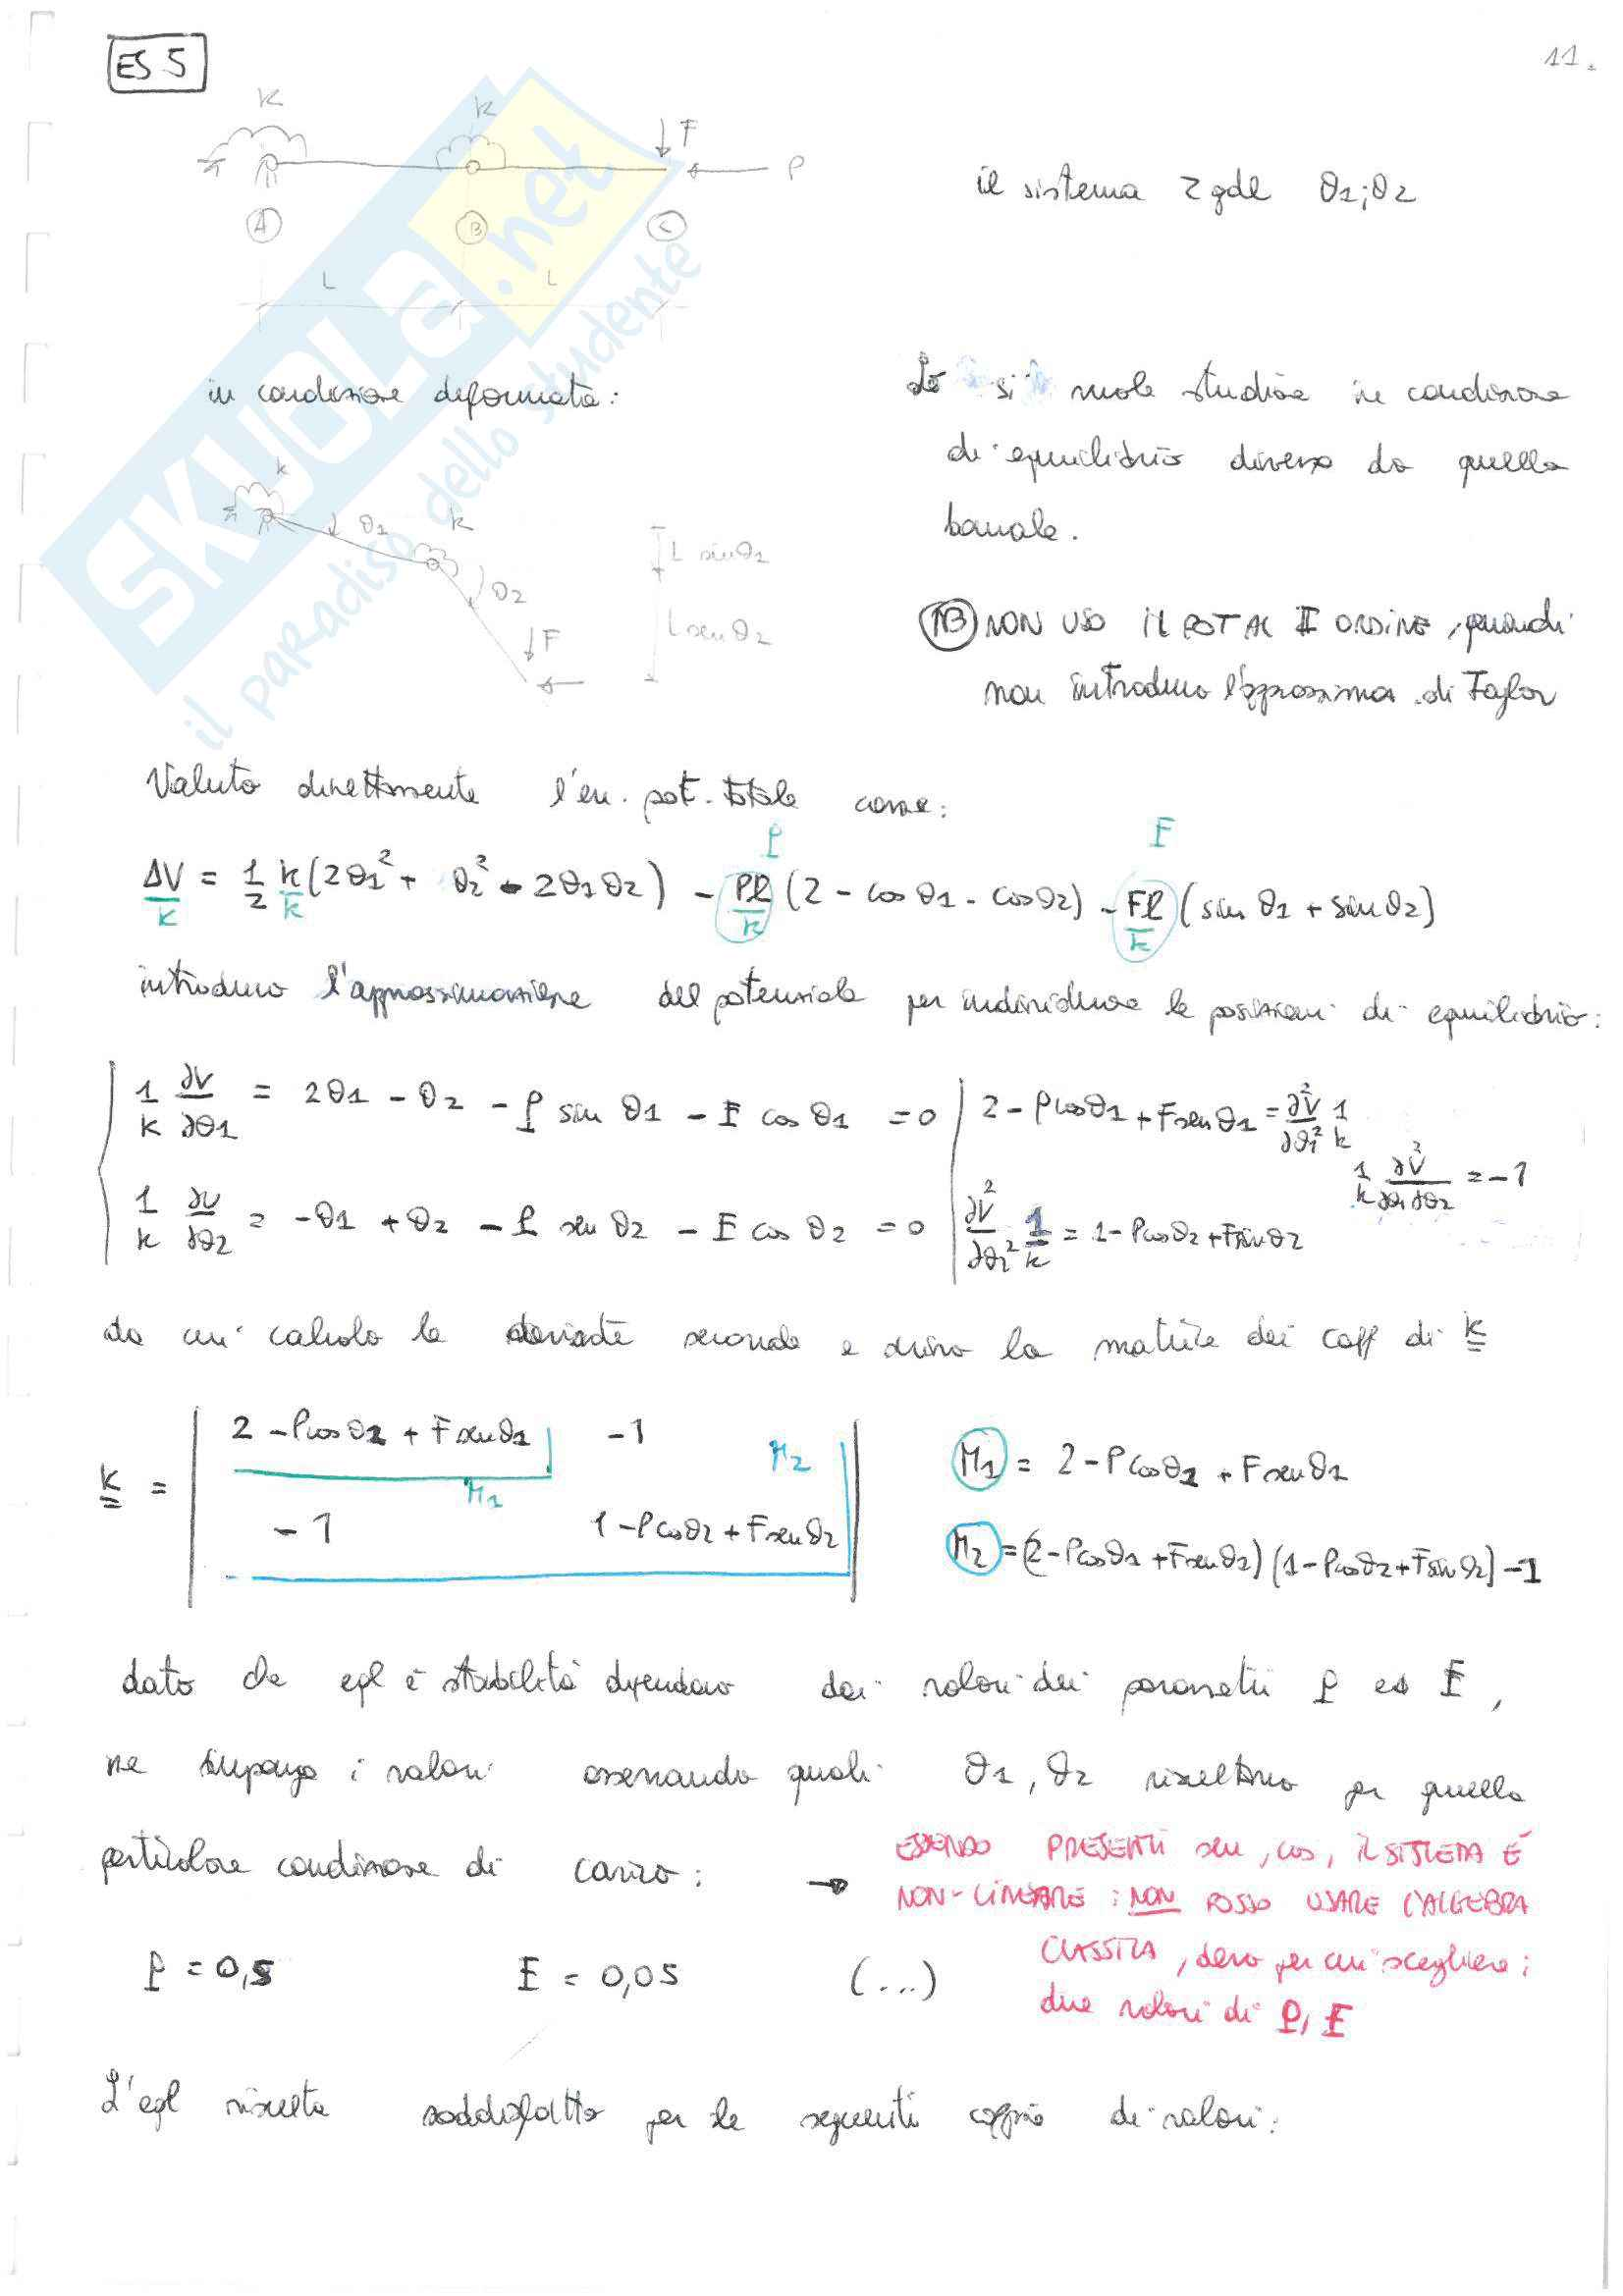 Stability of Structures - Appunti Pag. 21